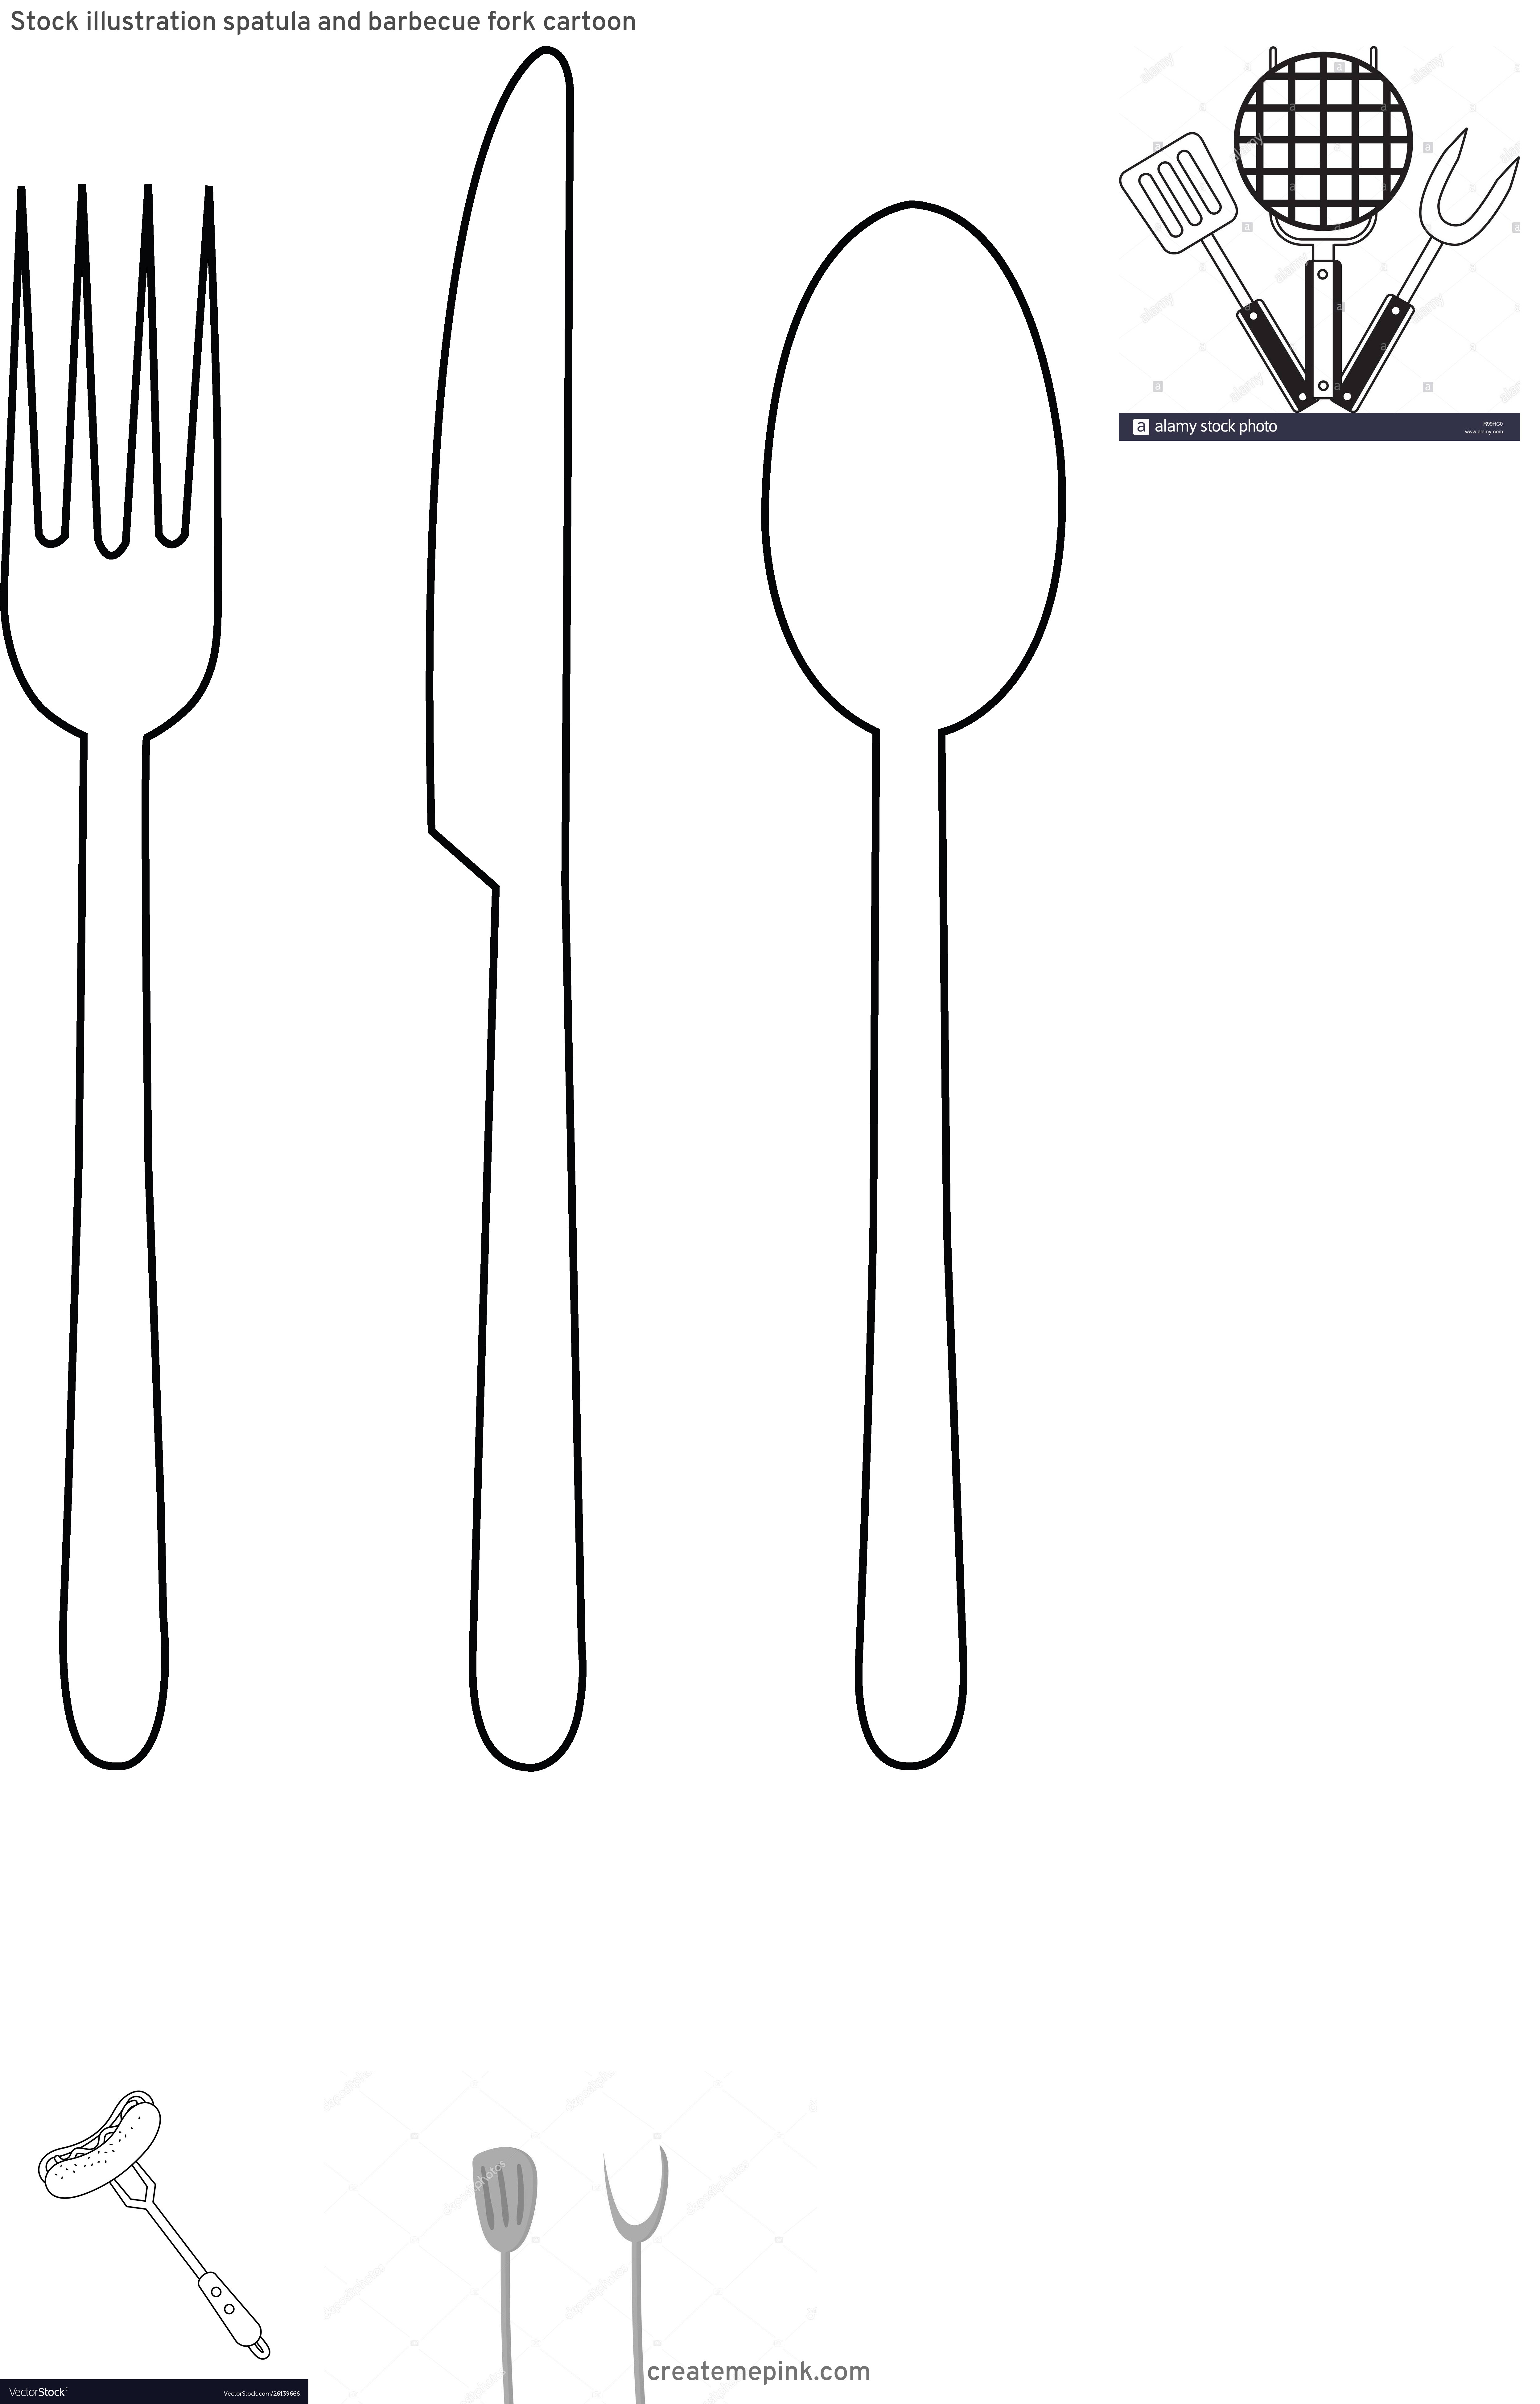 BBQ Fork Vector: Stock Illustration Spatula And Barbecue Fork Cartoon